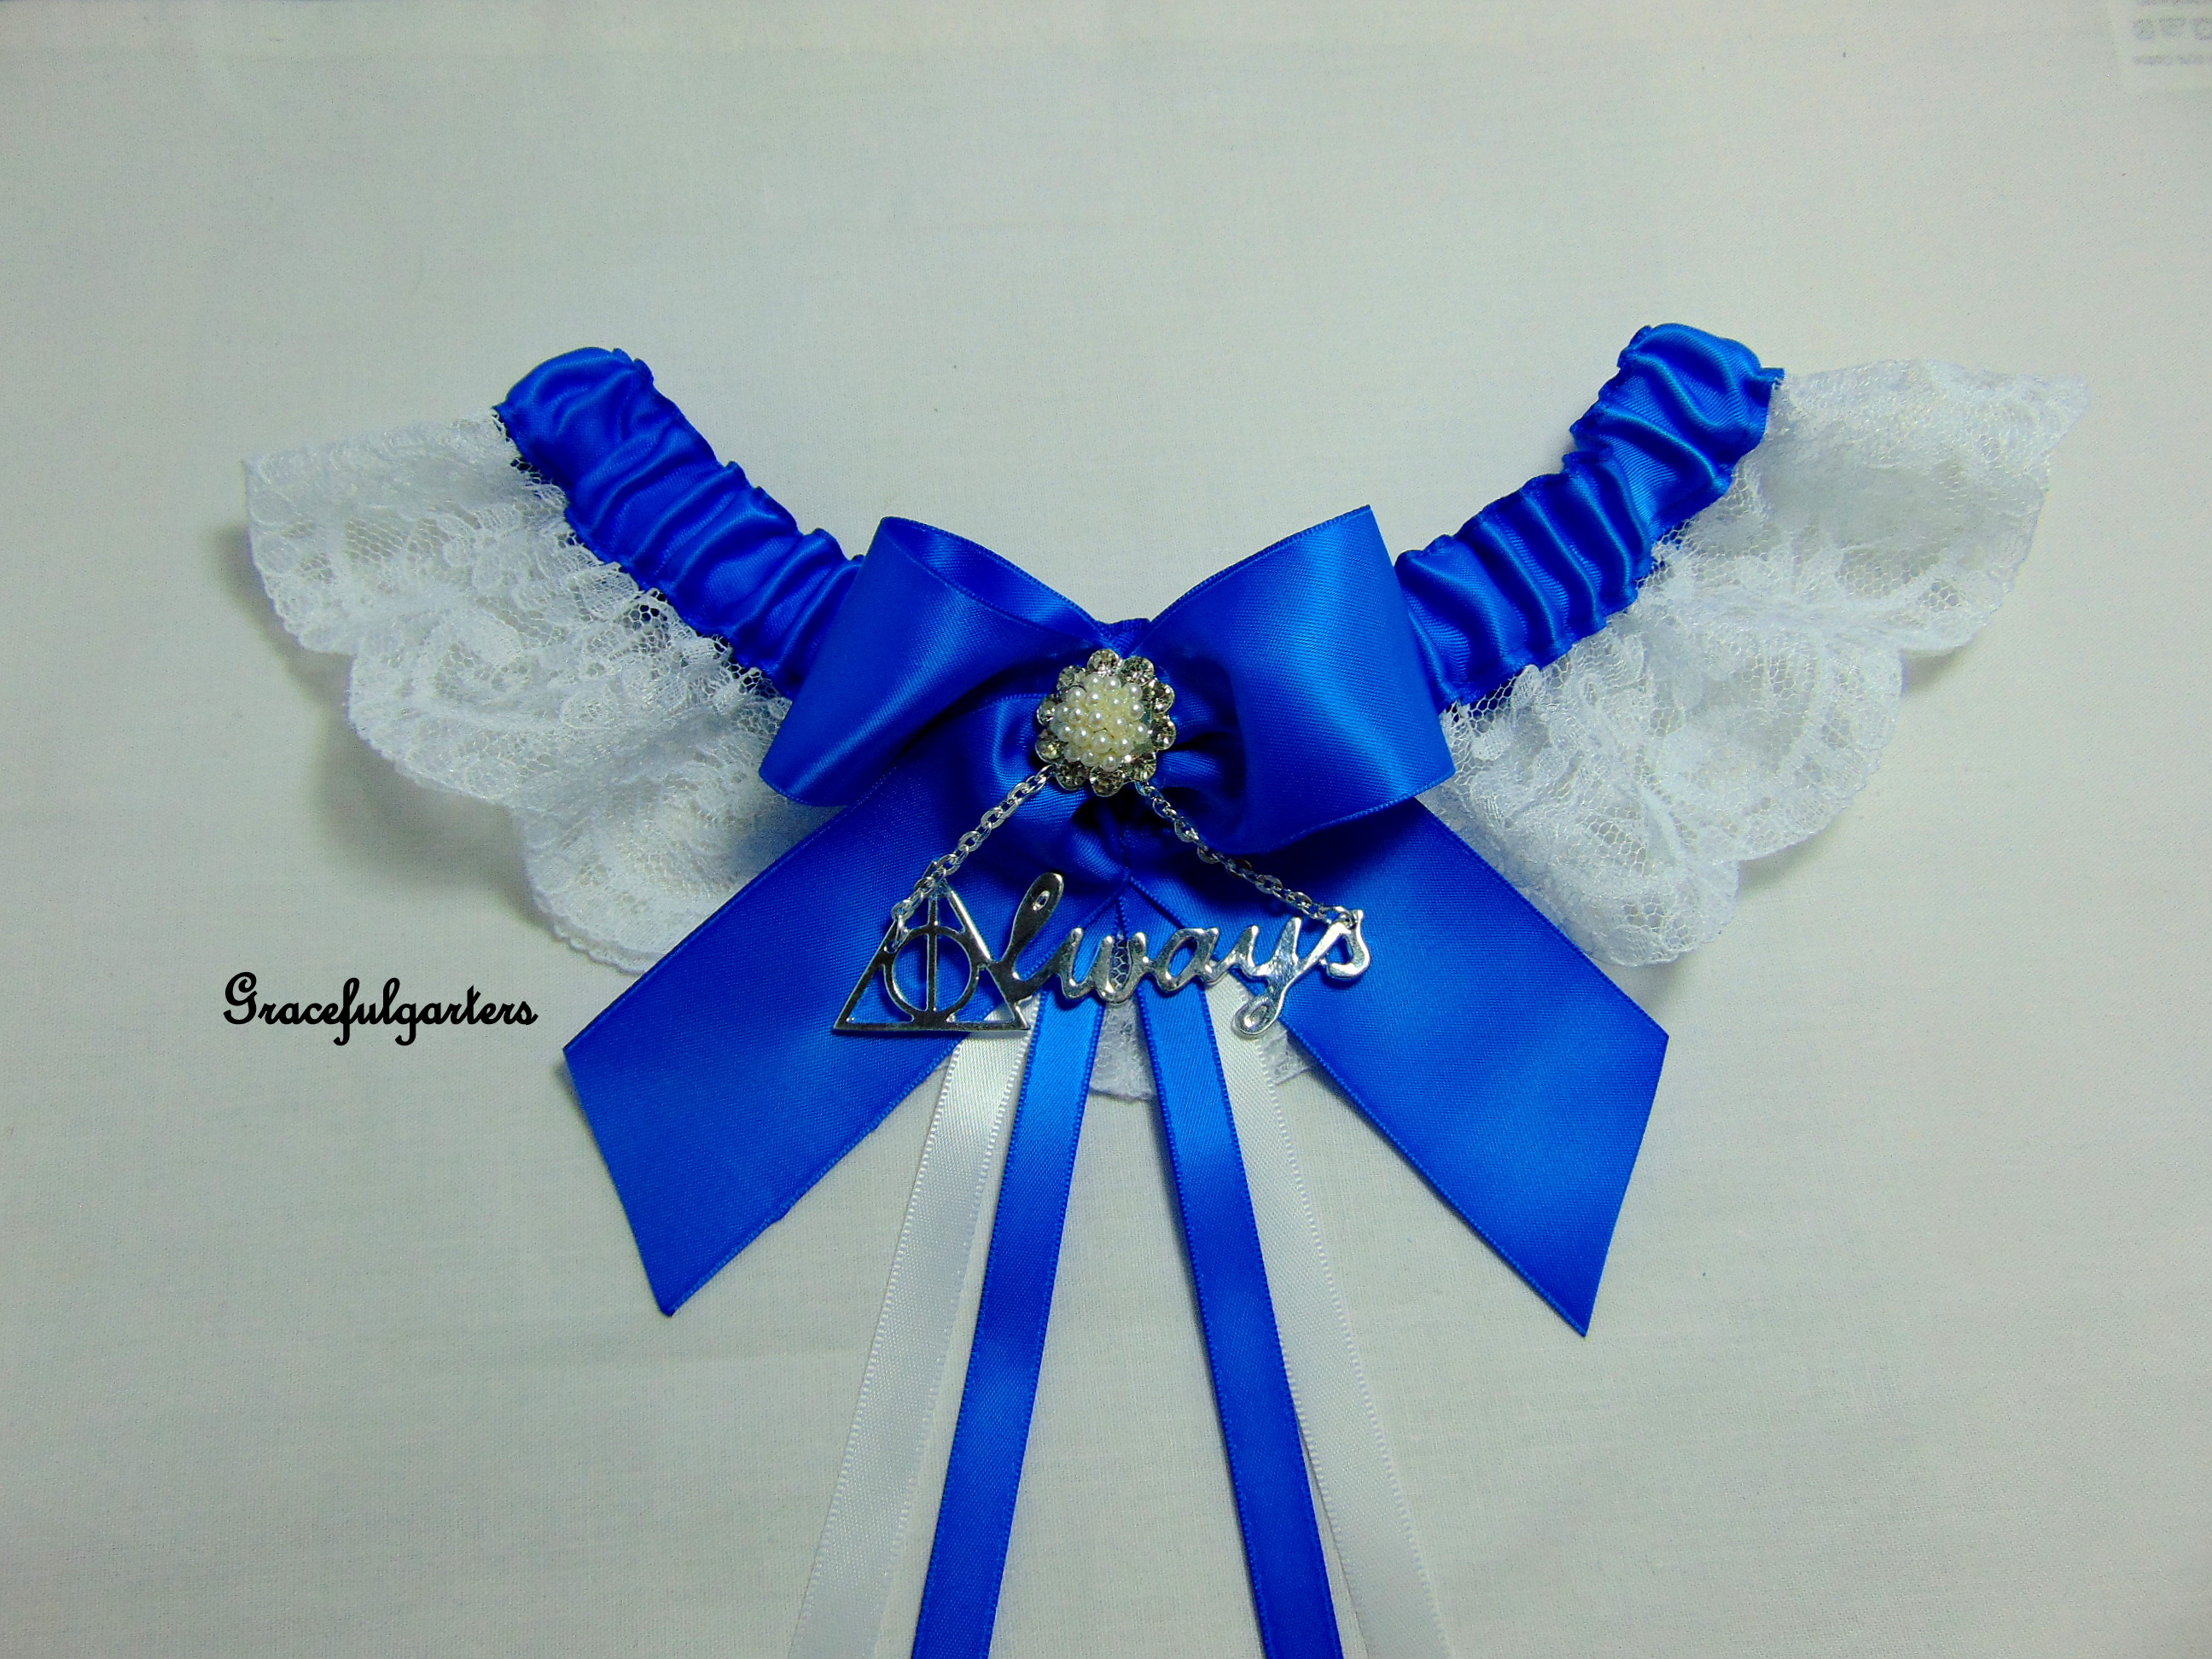 Azure Blue Harry Potter Deathly Hallows Always Lace Wedding Garter.